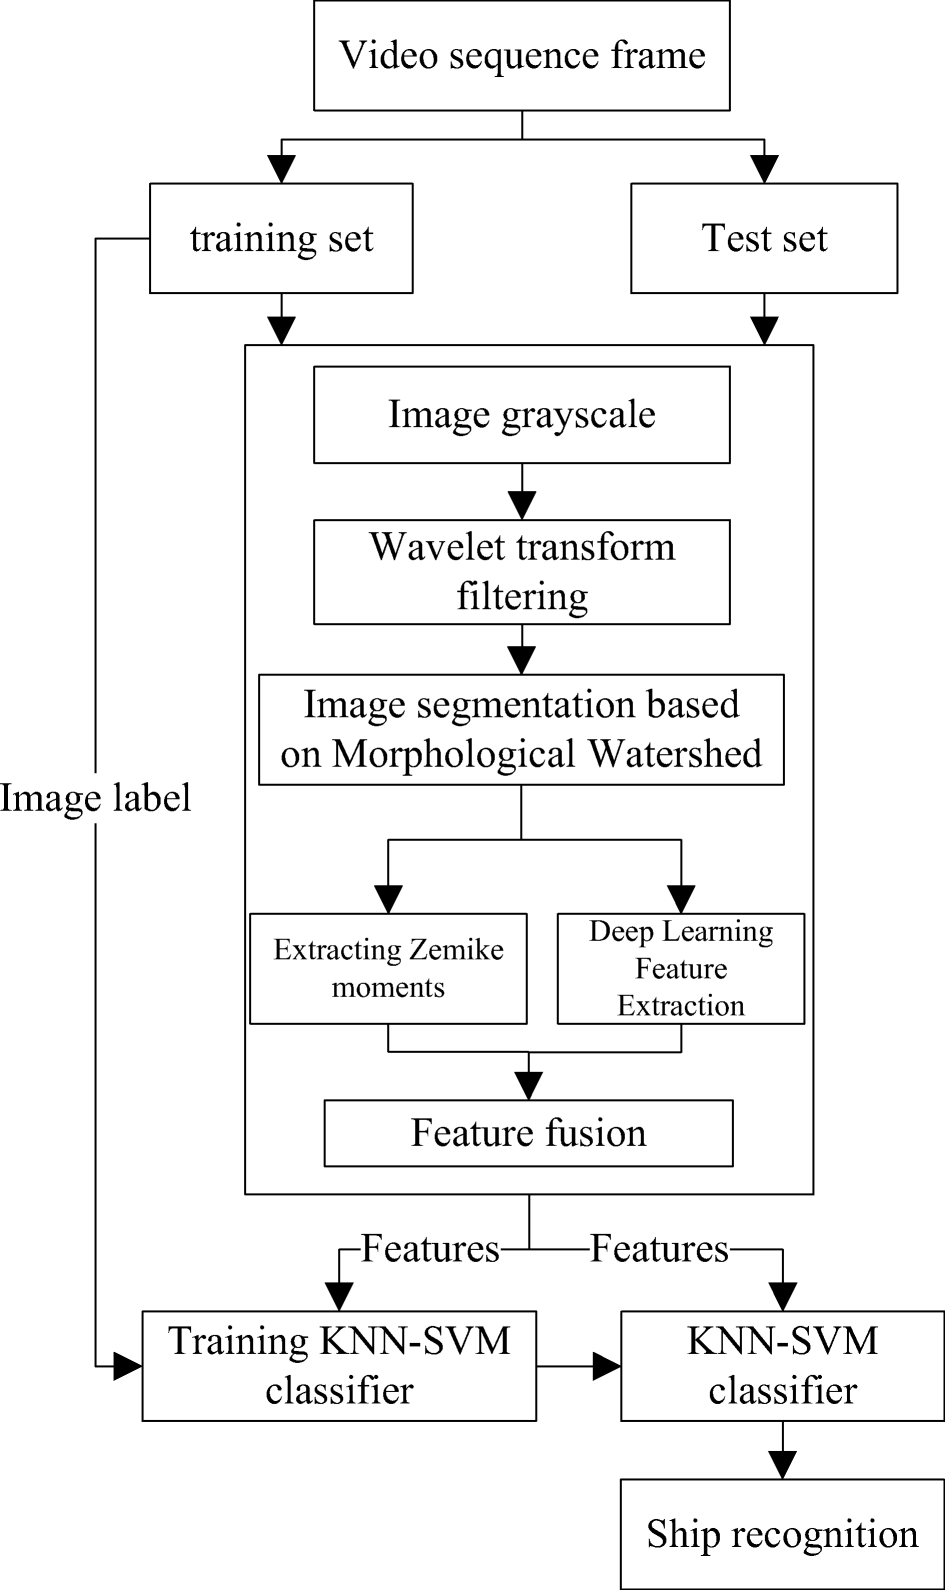 Ship recognition method combined with image segmentation and deep